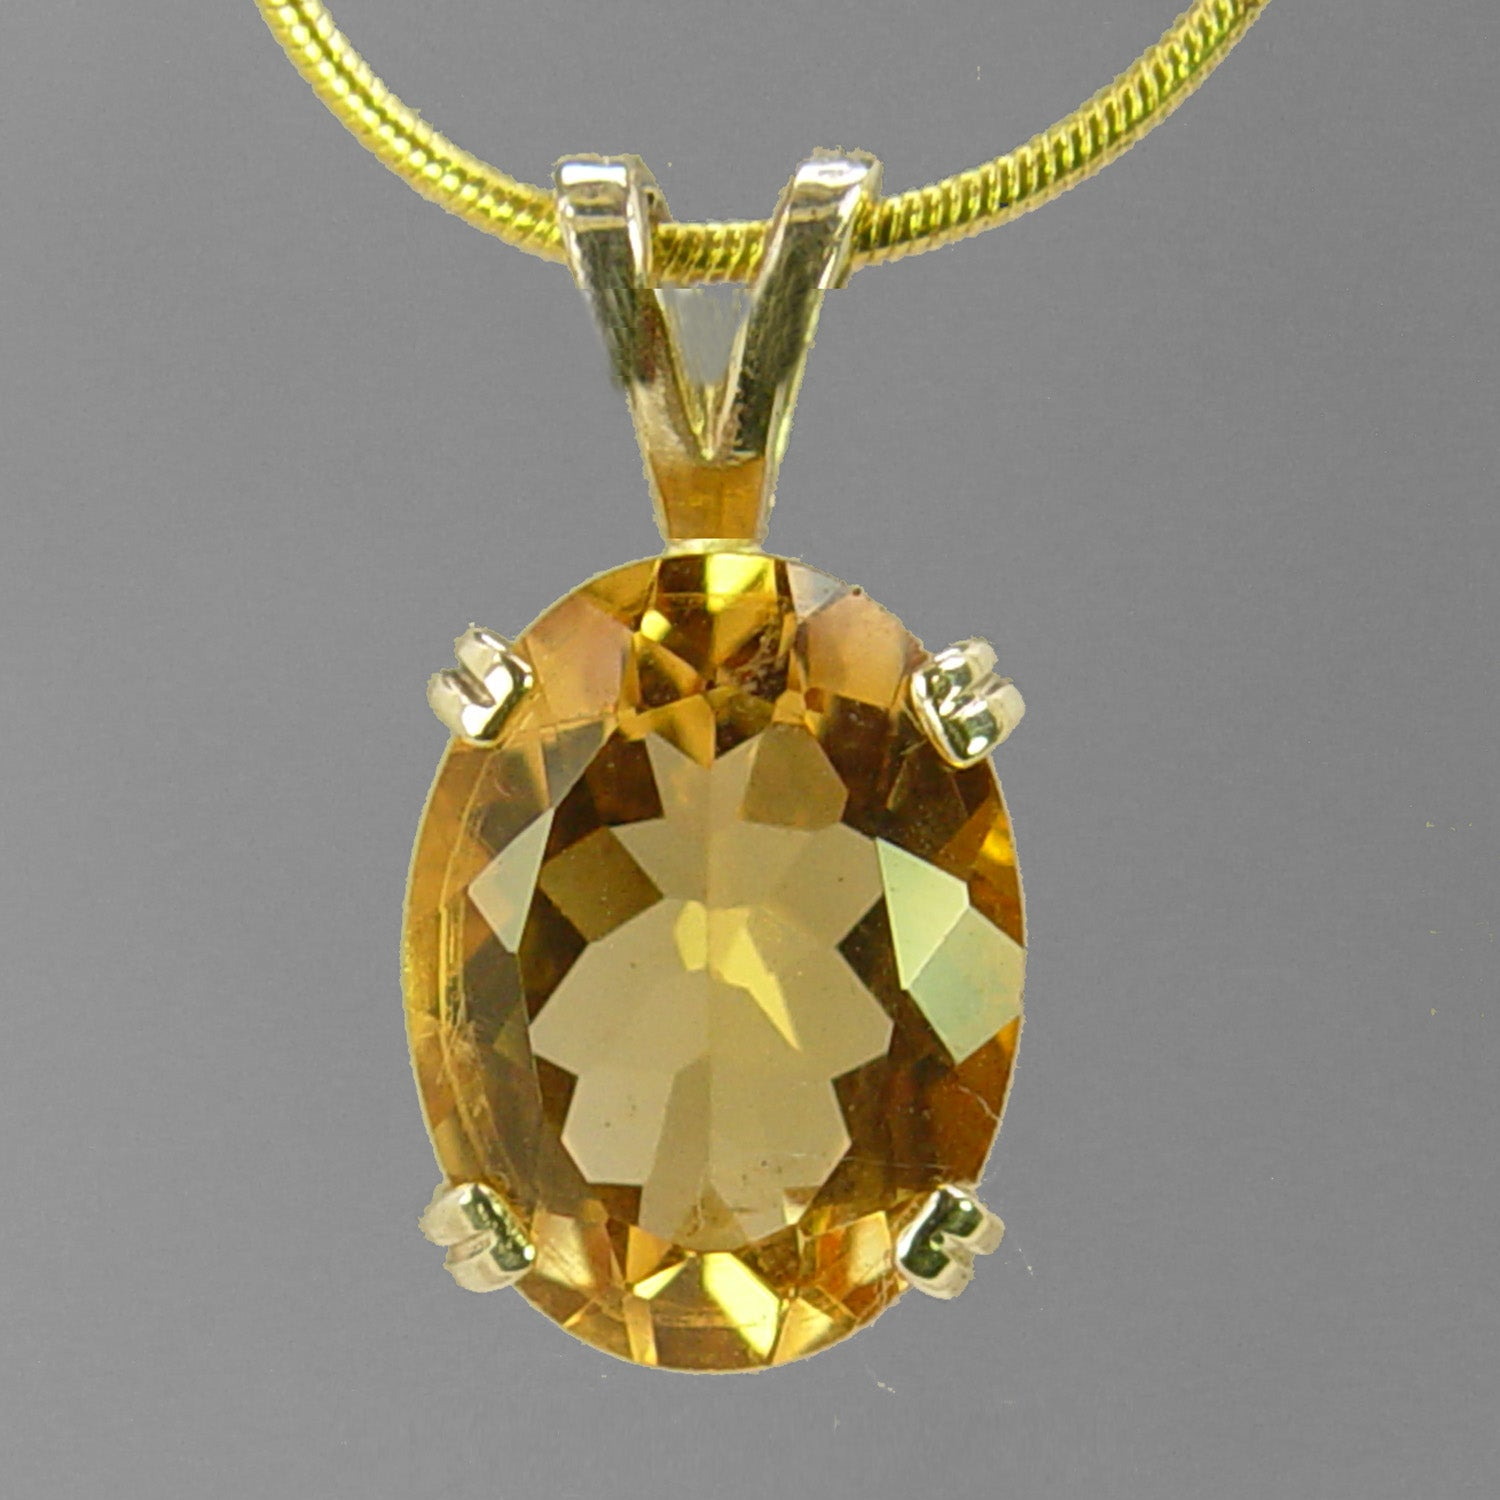 Citrine 7.54 ct Faceted Oval Prong Set 14KY Gold Pendant